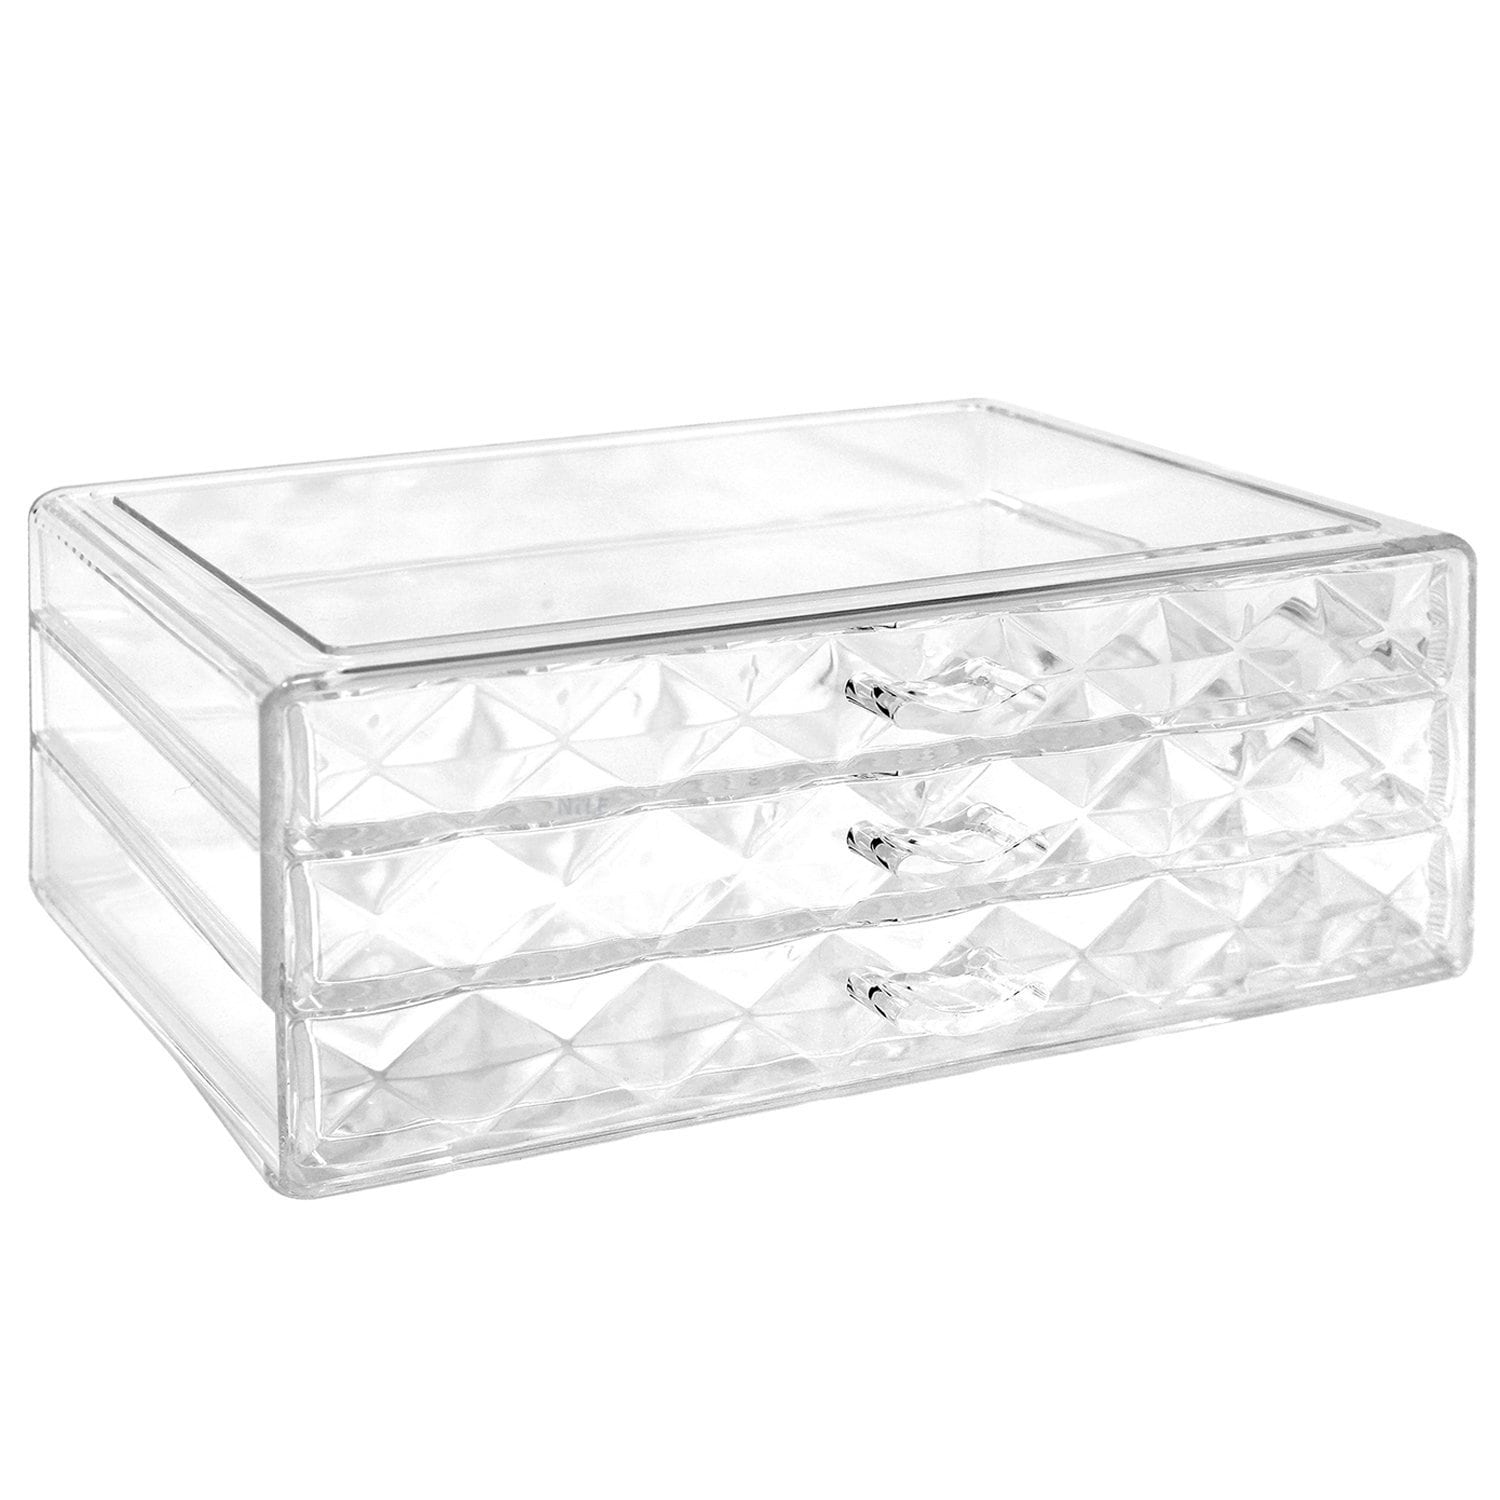 Ikee Design Diamond Pattern Jewelry And Cosmetic Storage Makeup Organizer,